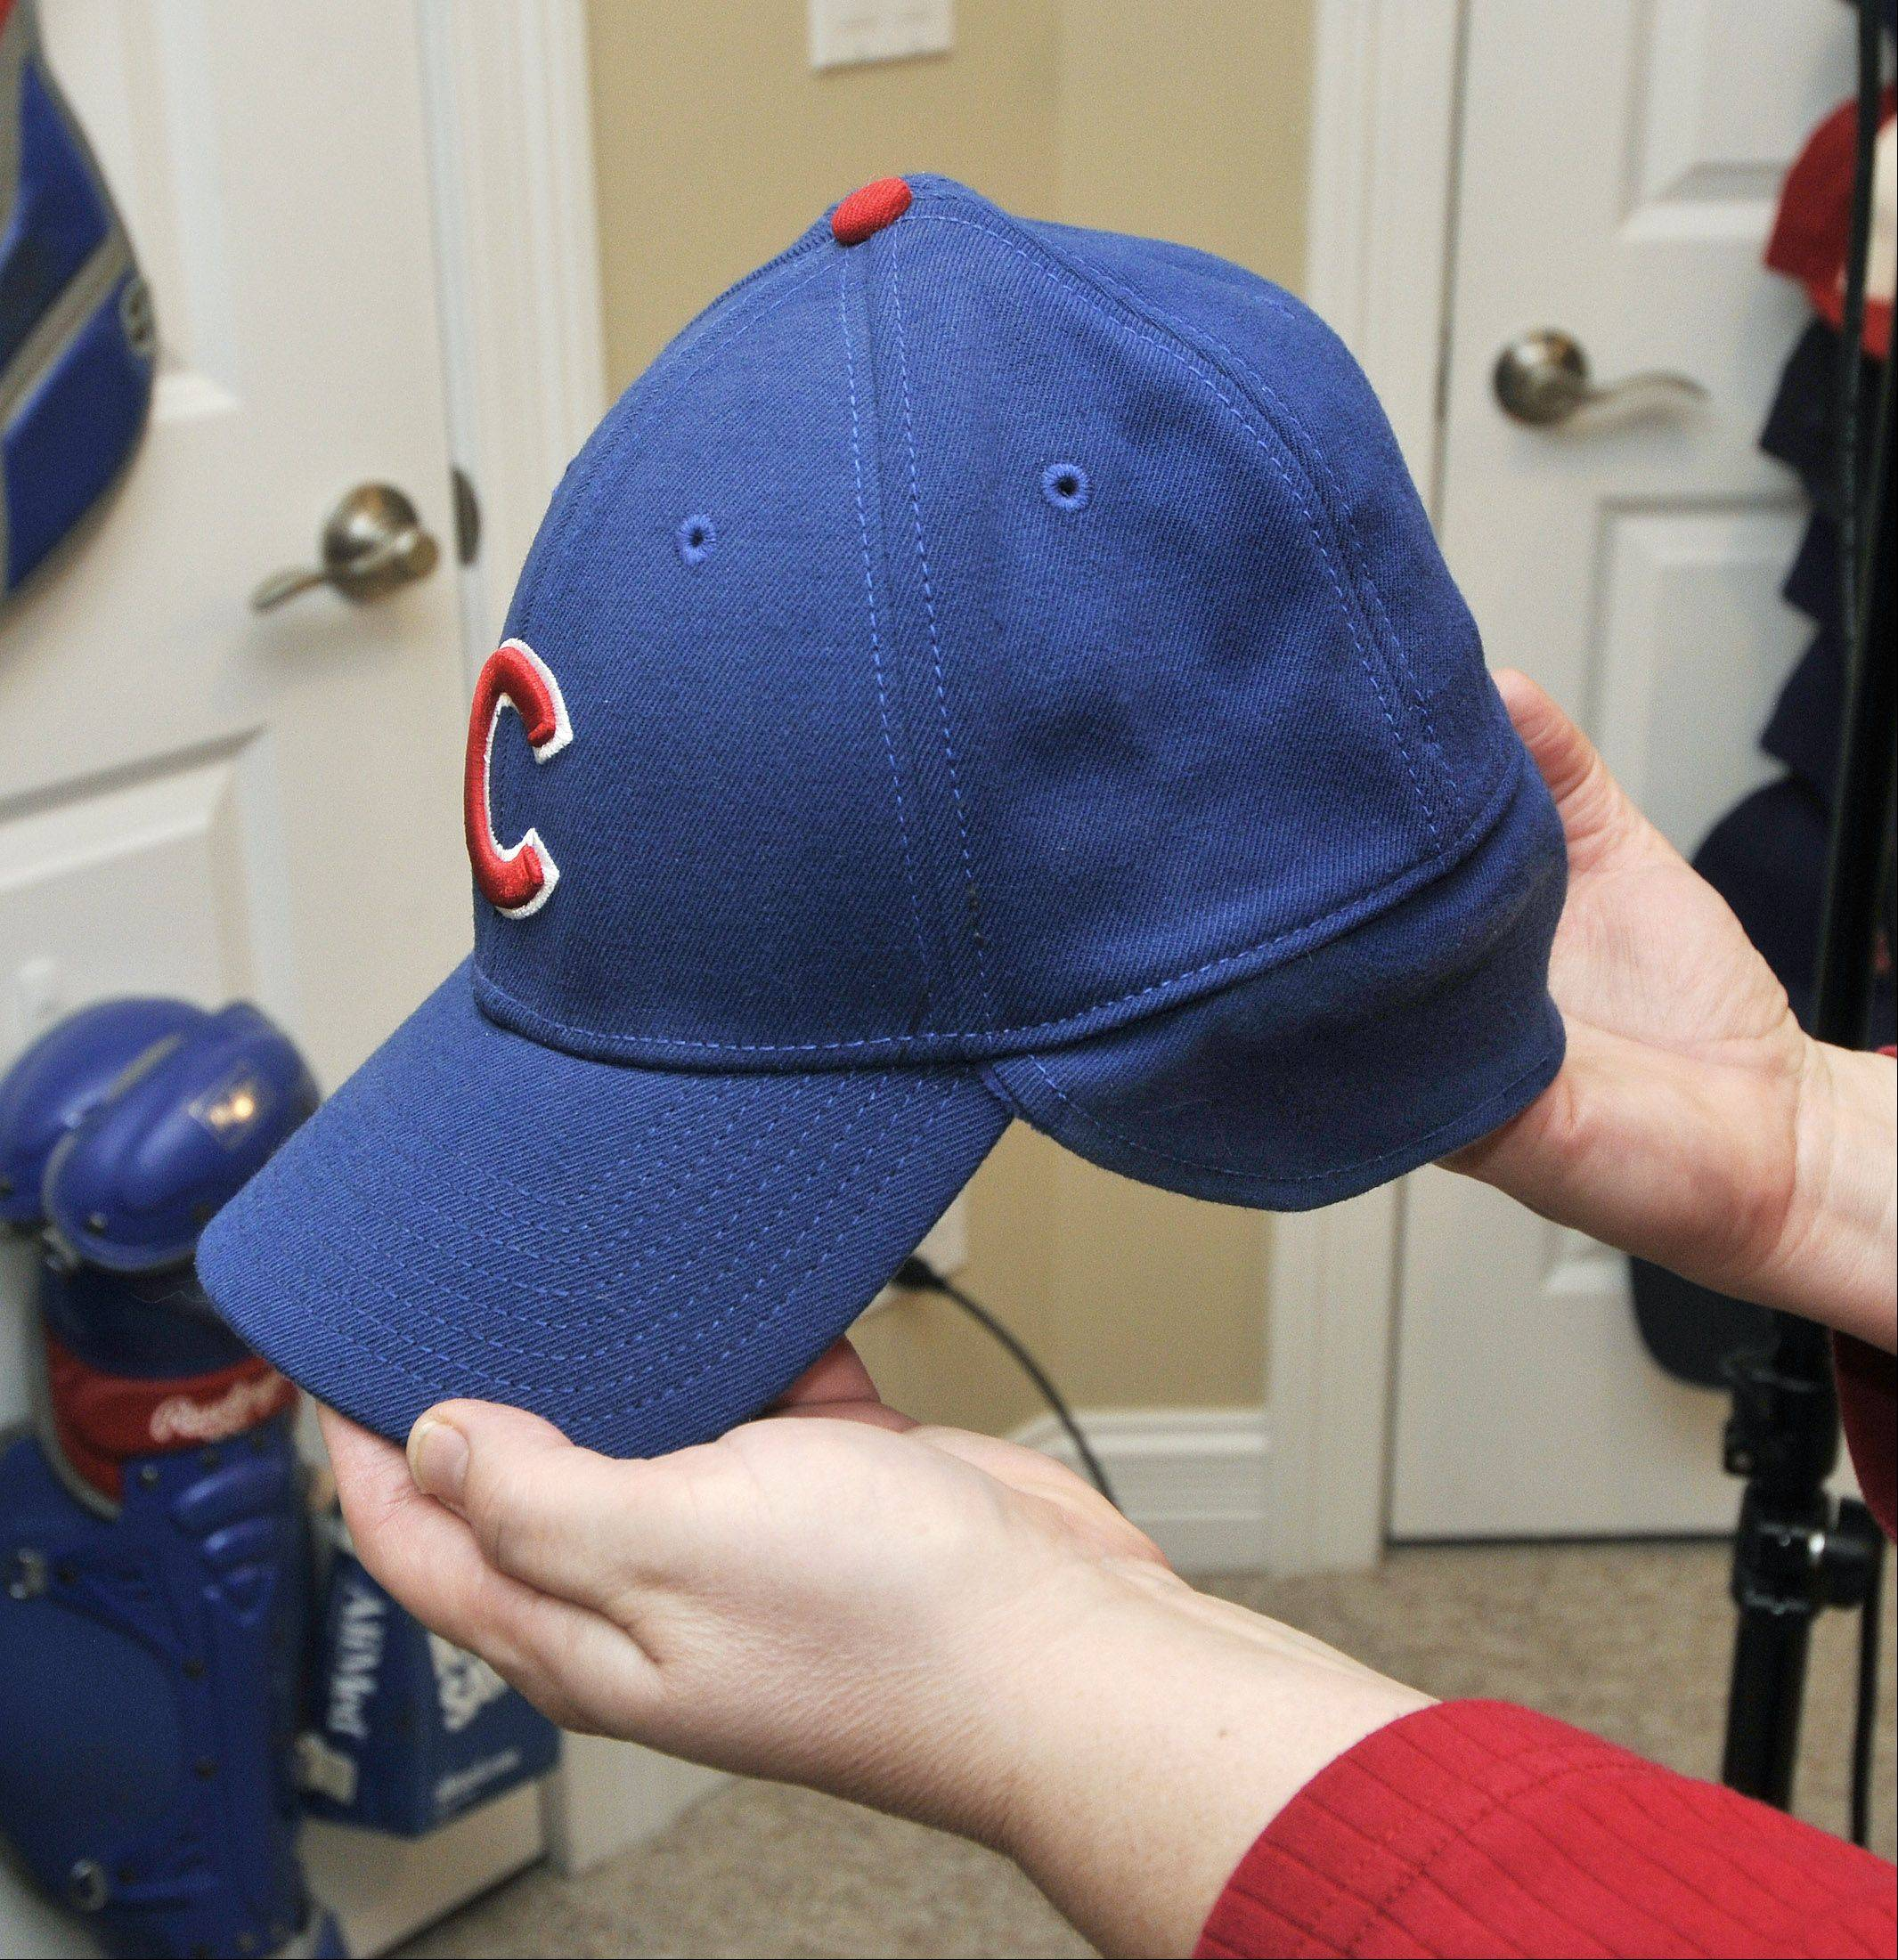 Chicago Cubs slugger Aramis Ramirez now plays for Milwaukee, but collector Sue Kren still has plenty of Ramirez souvenirs such as this hat with the added flaps for cold-weather games.